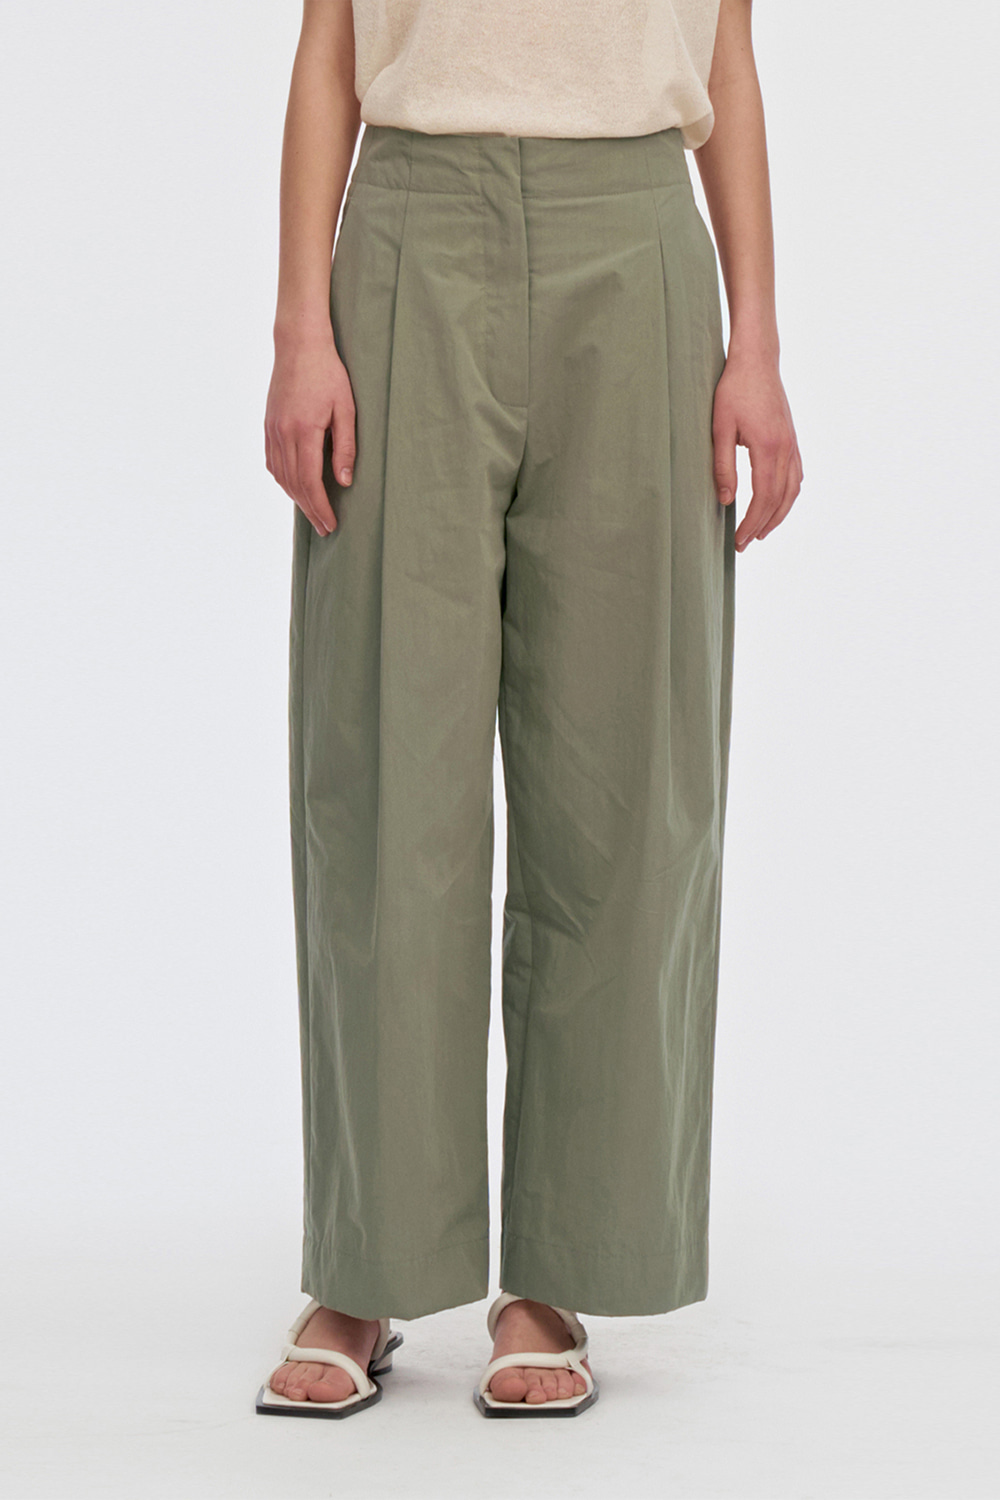 Relaxed Paperback Pants Women [Khaki]